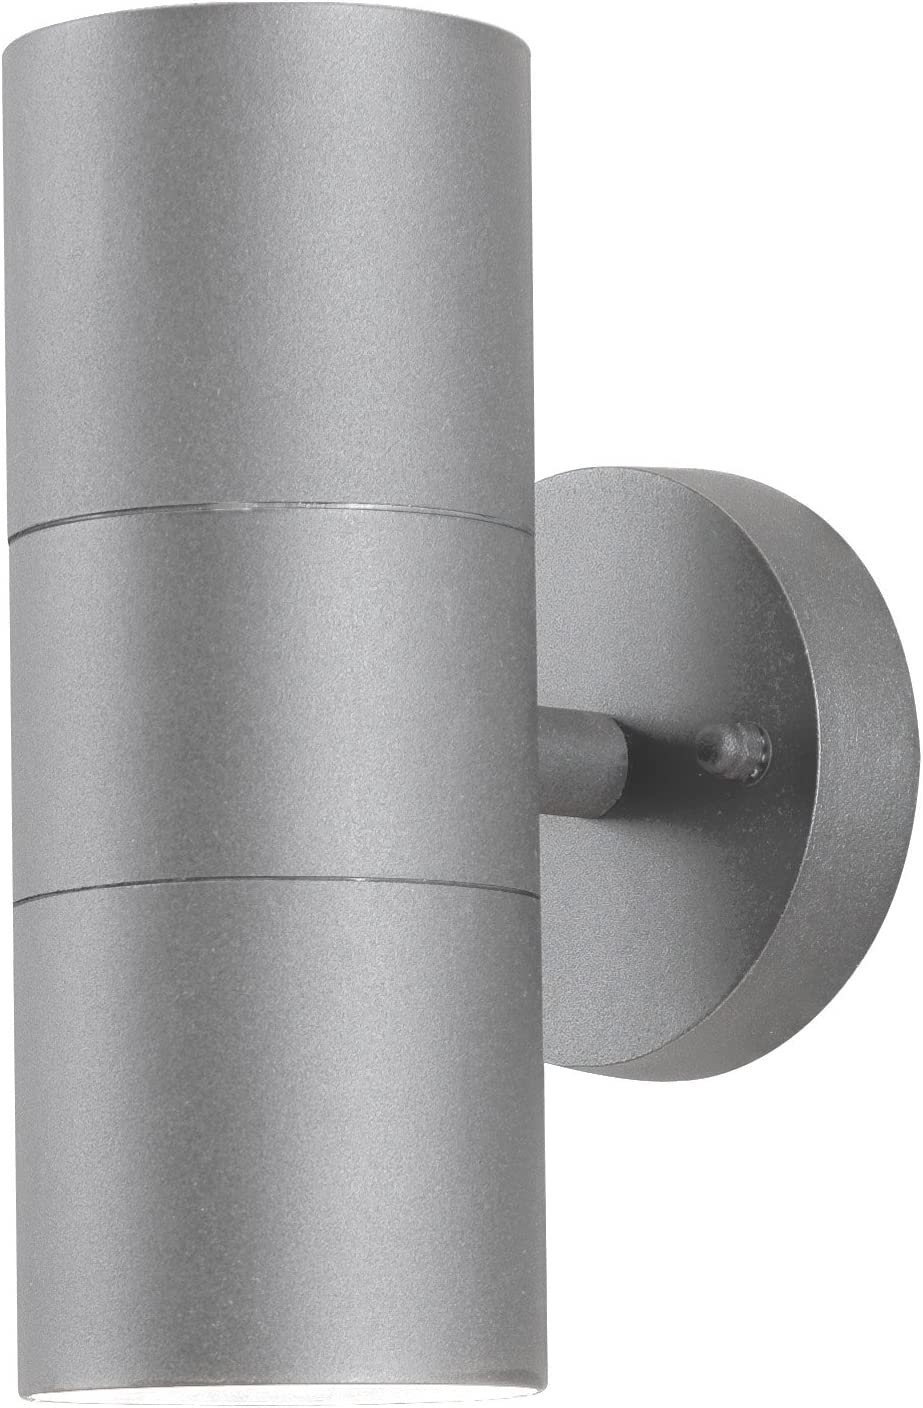 Konstsmide Outdoor Lights Modena Large Up And Down Outdoor Wall Light 2 X 35 W Gu10 Max Wall Lamp Clear Glass Lens Ip44 Outside Light Grey Amazon Co Uk Garden Outdoors